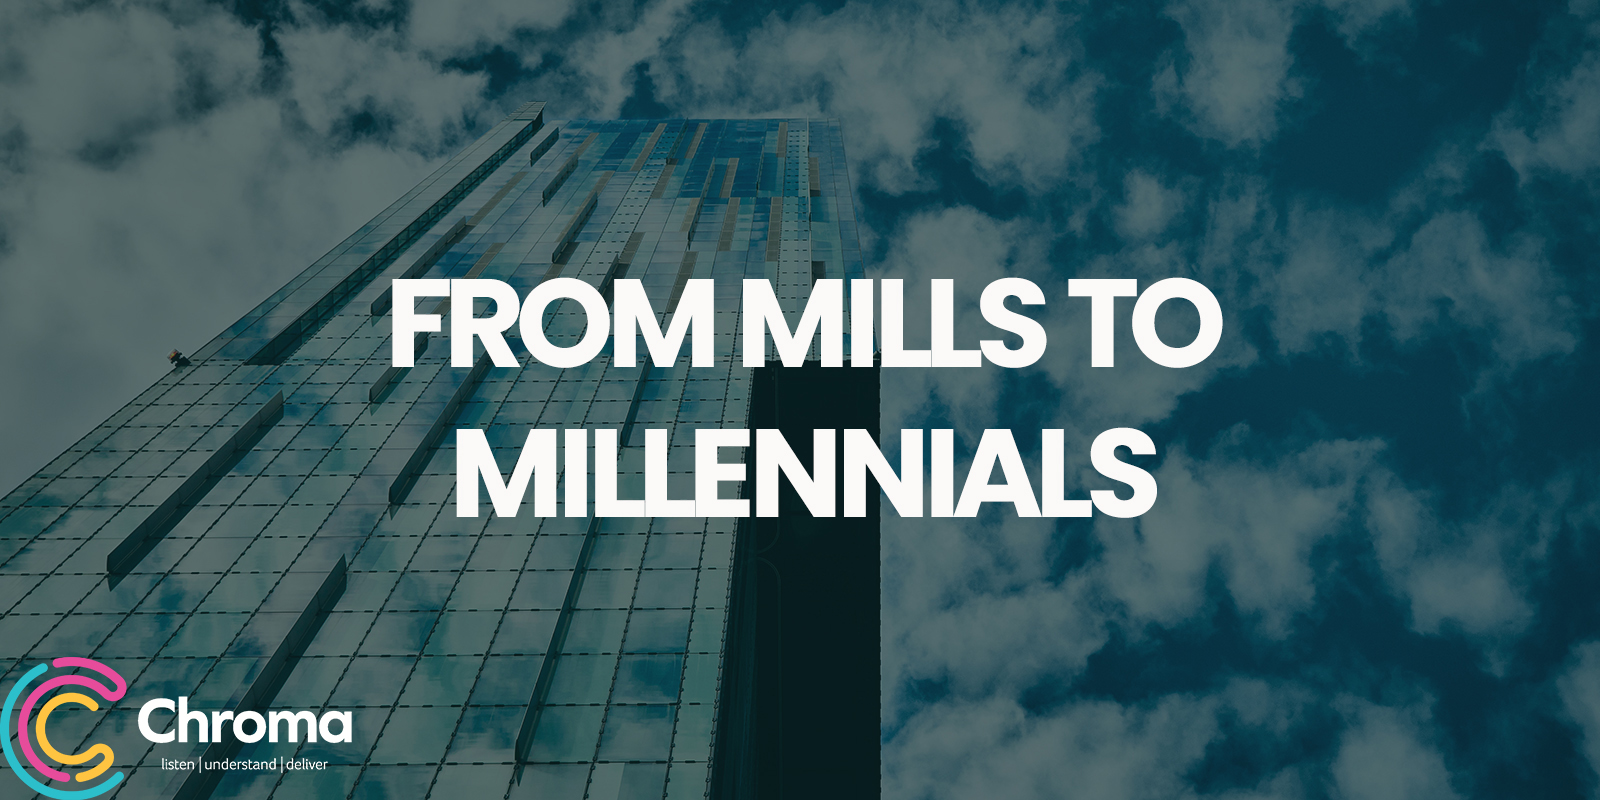 From Mills to Millennials